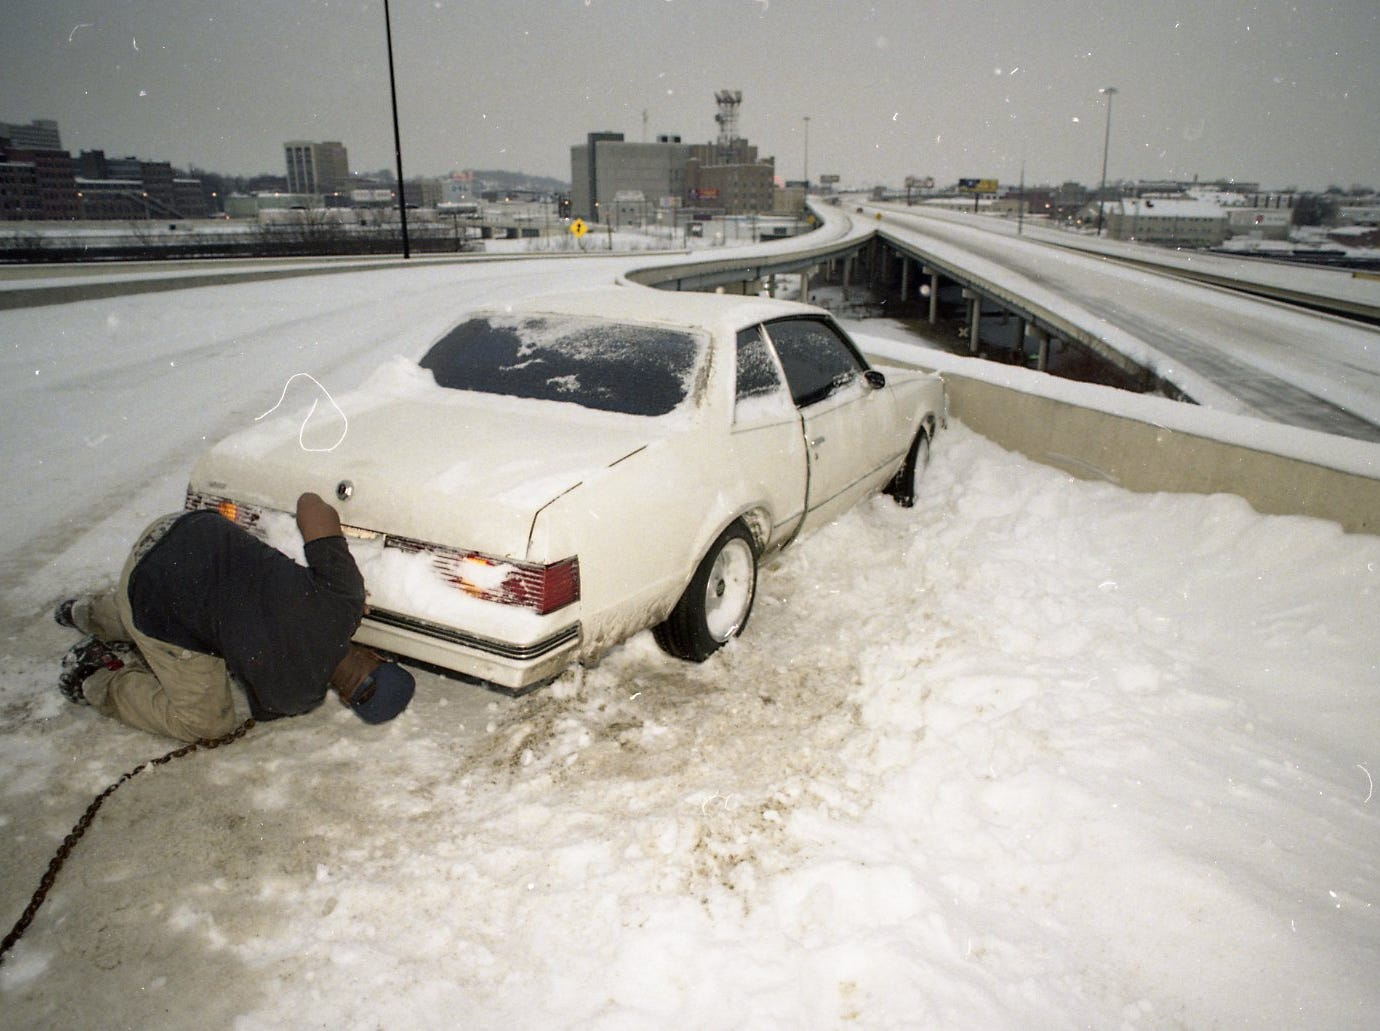 William Houston of Knoxville works to attach a chain to his car after sliding on to the shoulder and getting stuck in February 1996 on the access ramp from I-275 to I-40 East.